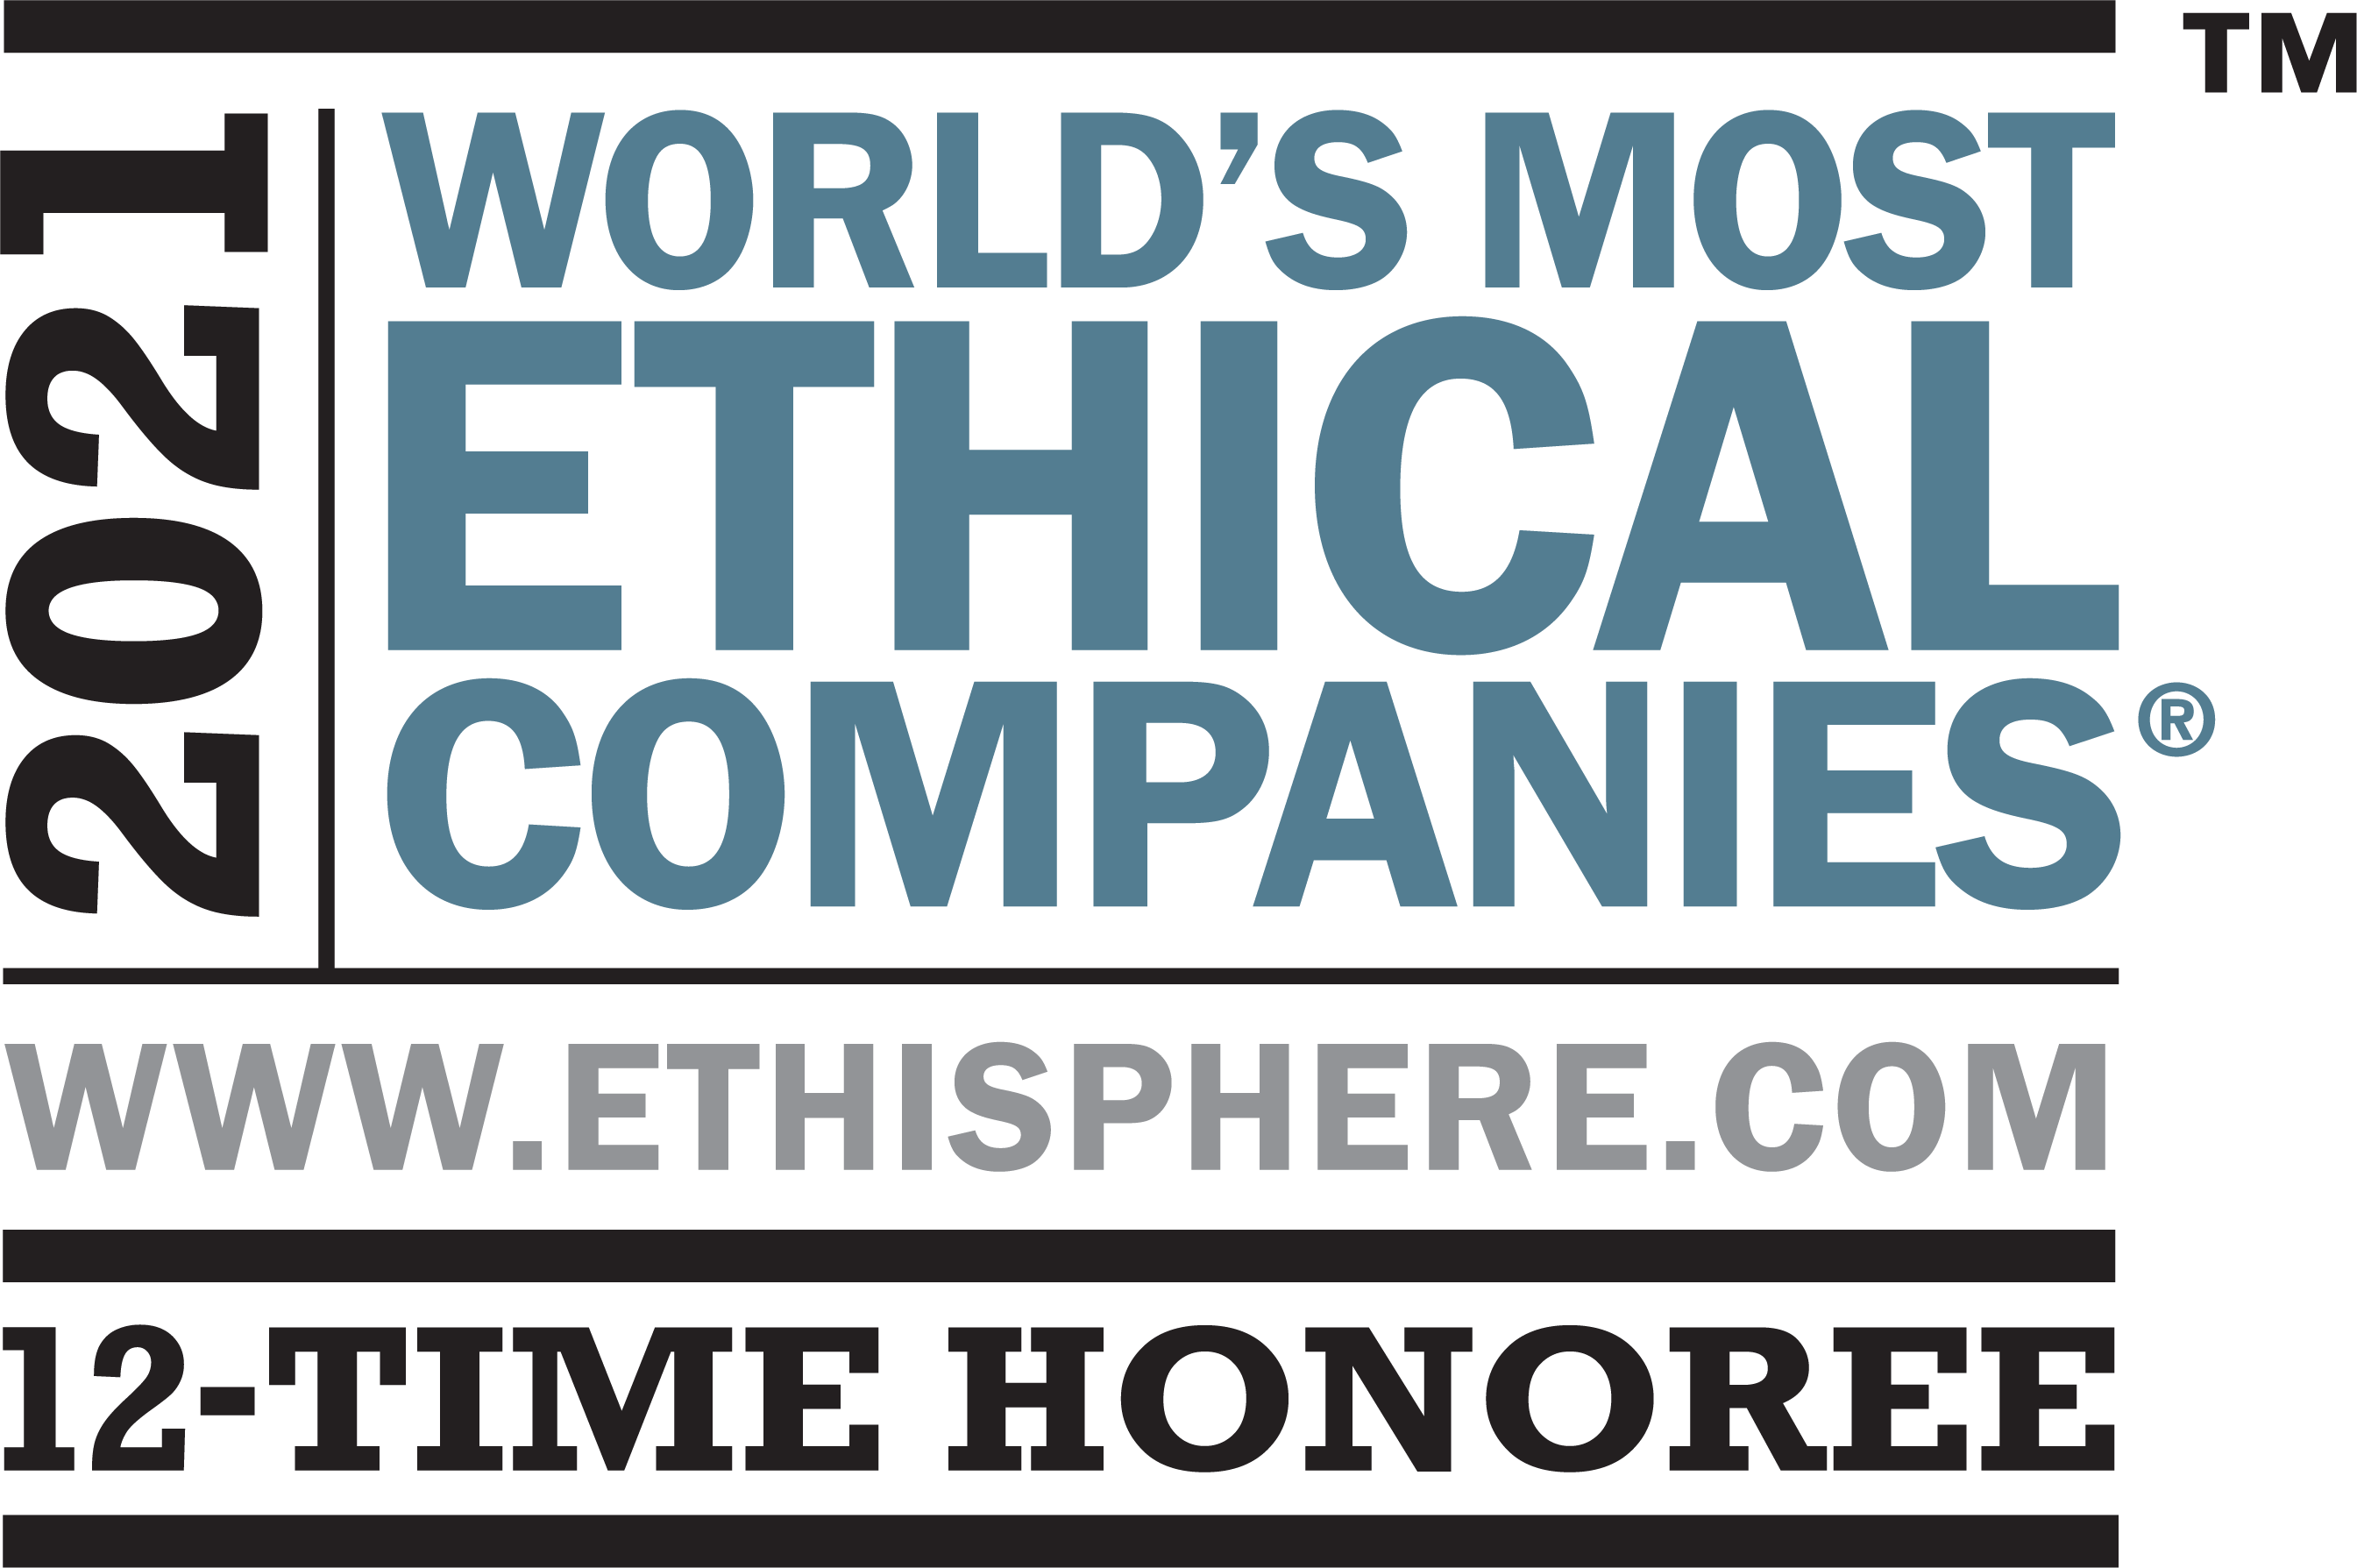 Meet the Team - Ethisphere Ethical